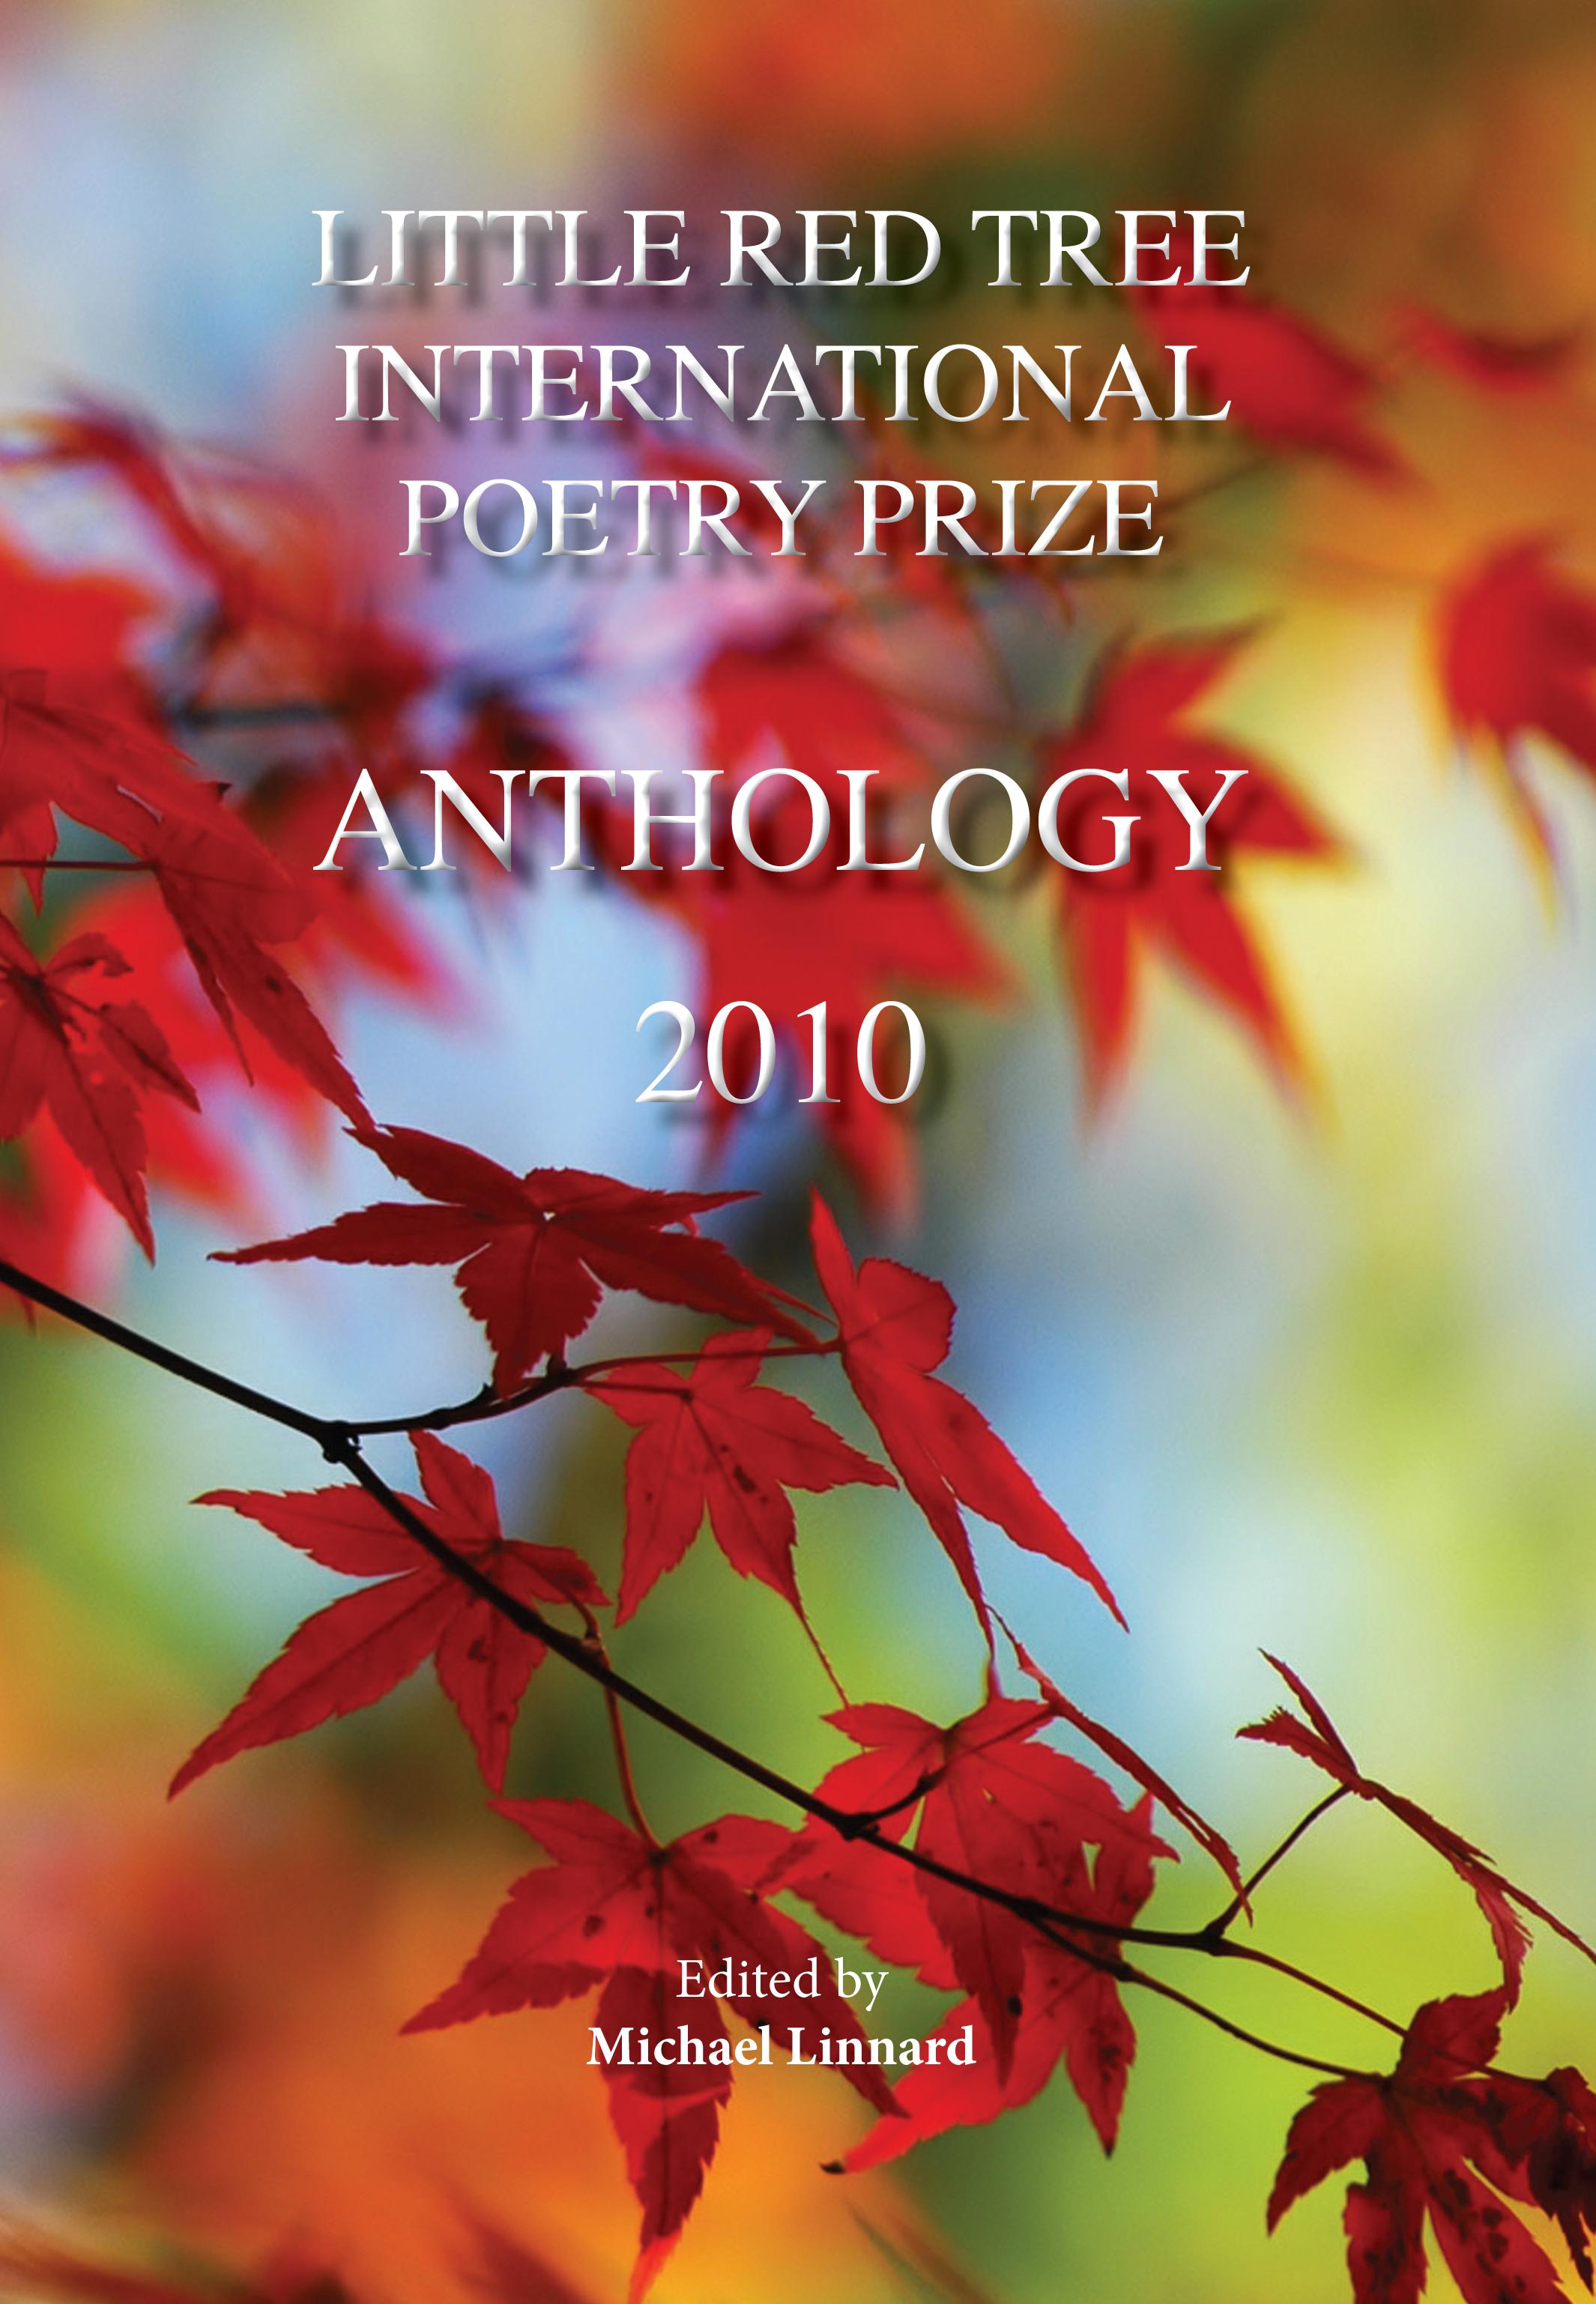 Little Red Tree International Poetry Prize 2010 - Anthology EB2370003265125